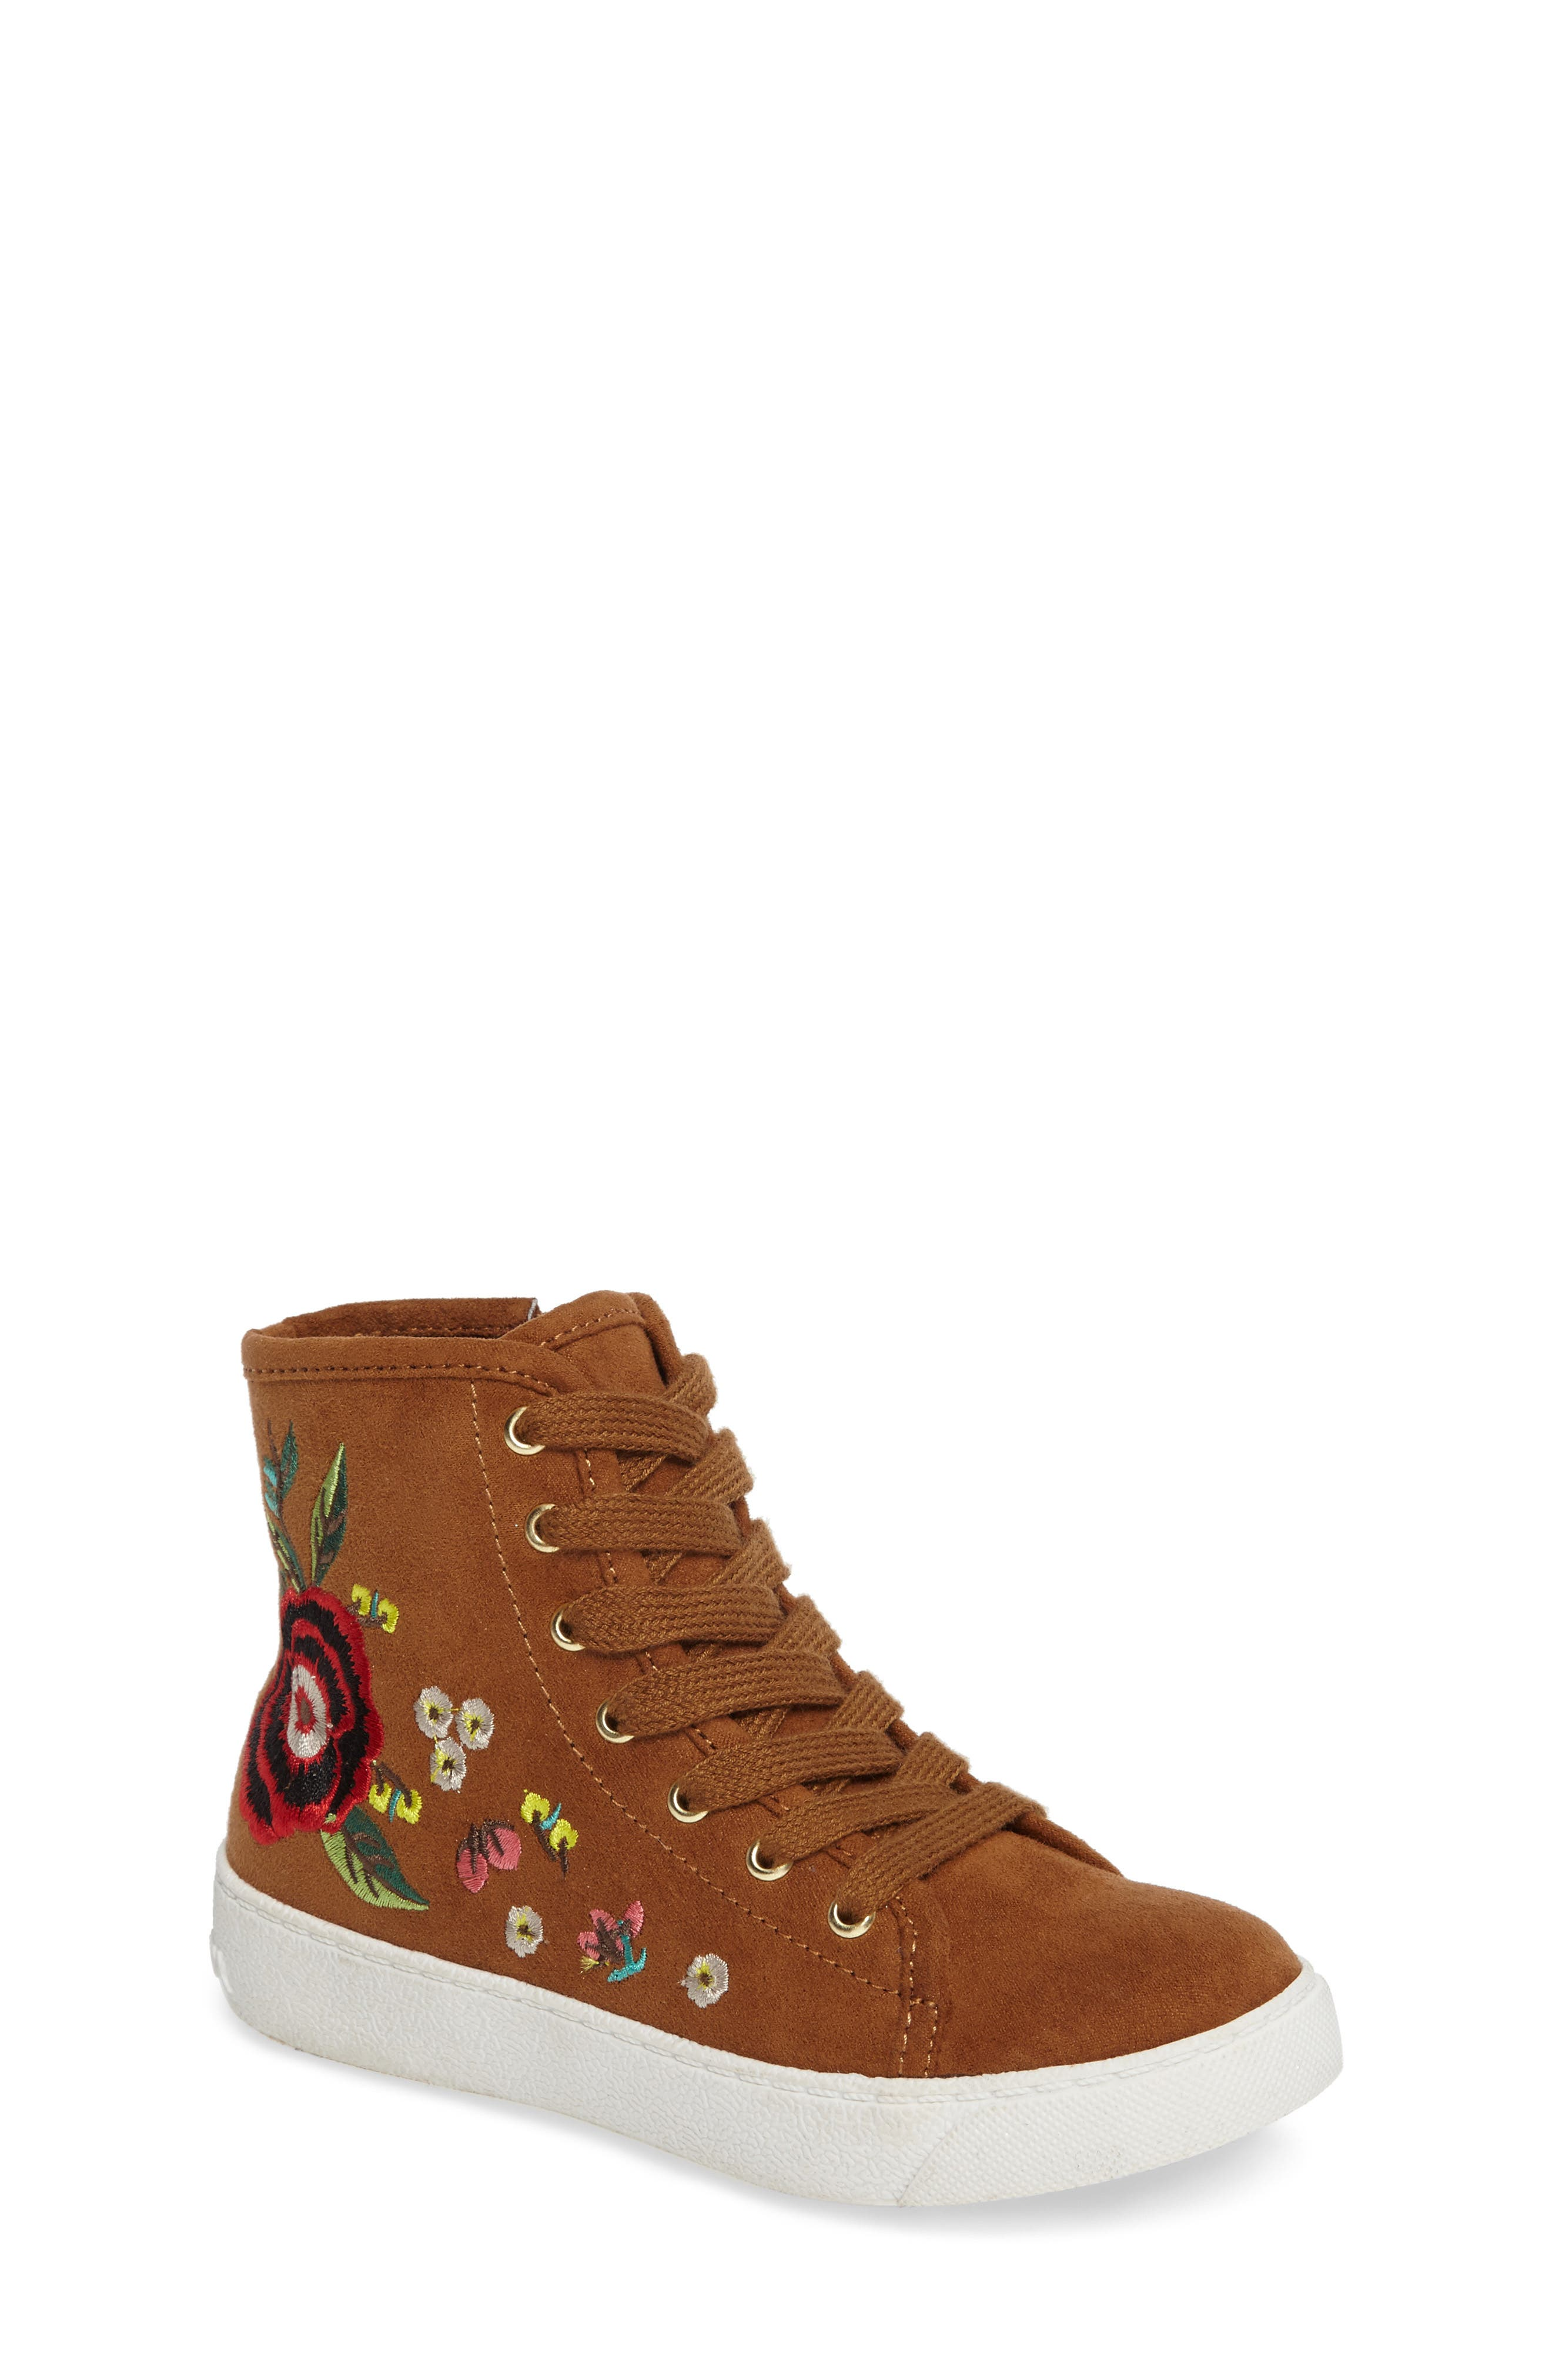 Harriet Embroidered High Top Sneaker,                             Main thumbnail 1, color,                             Saddle Faux Leather